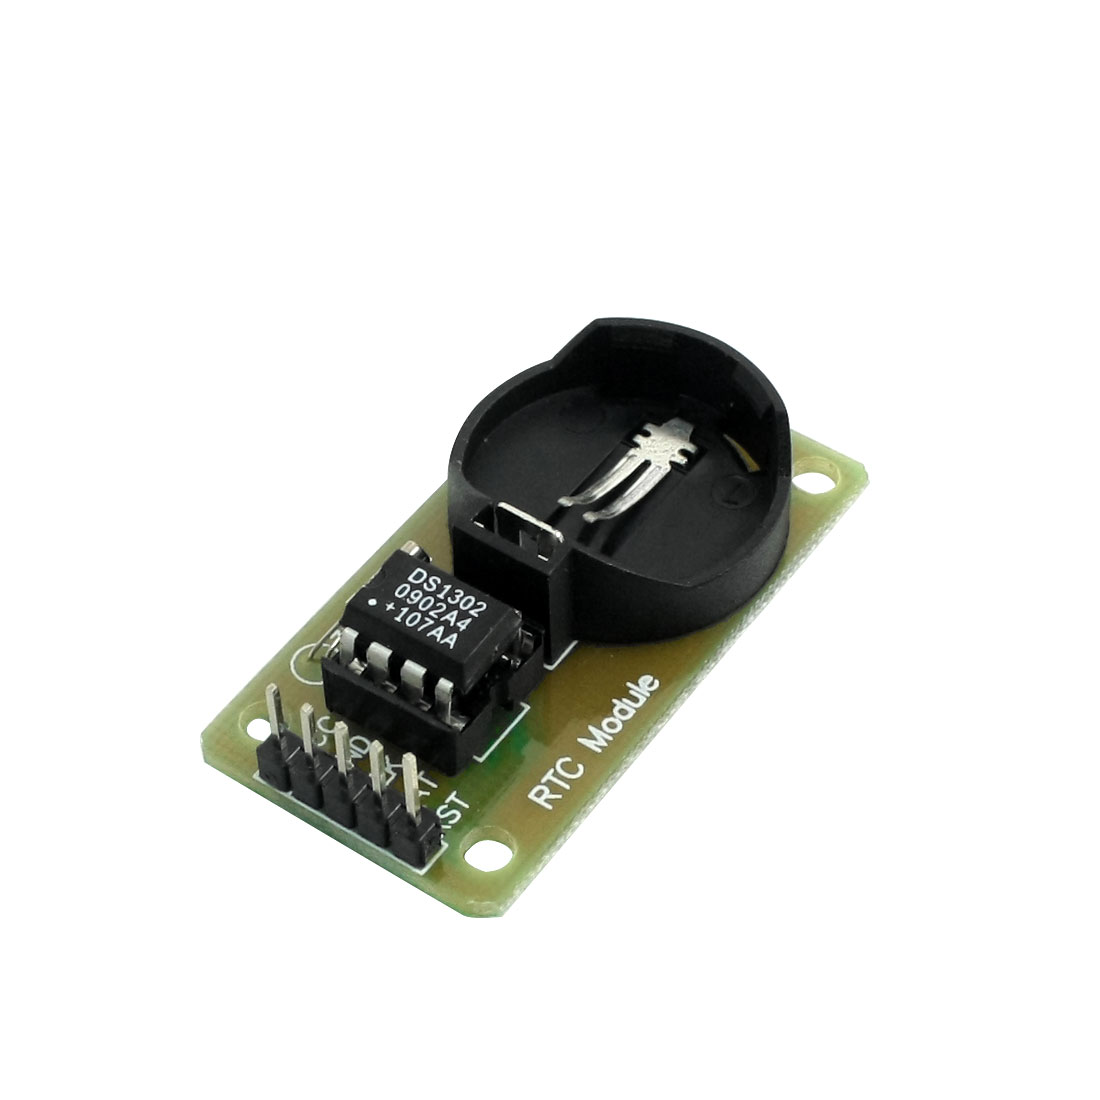 32.768KHZ 5Pins DS1302 I2C RTC Real Time Clock Module